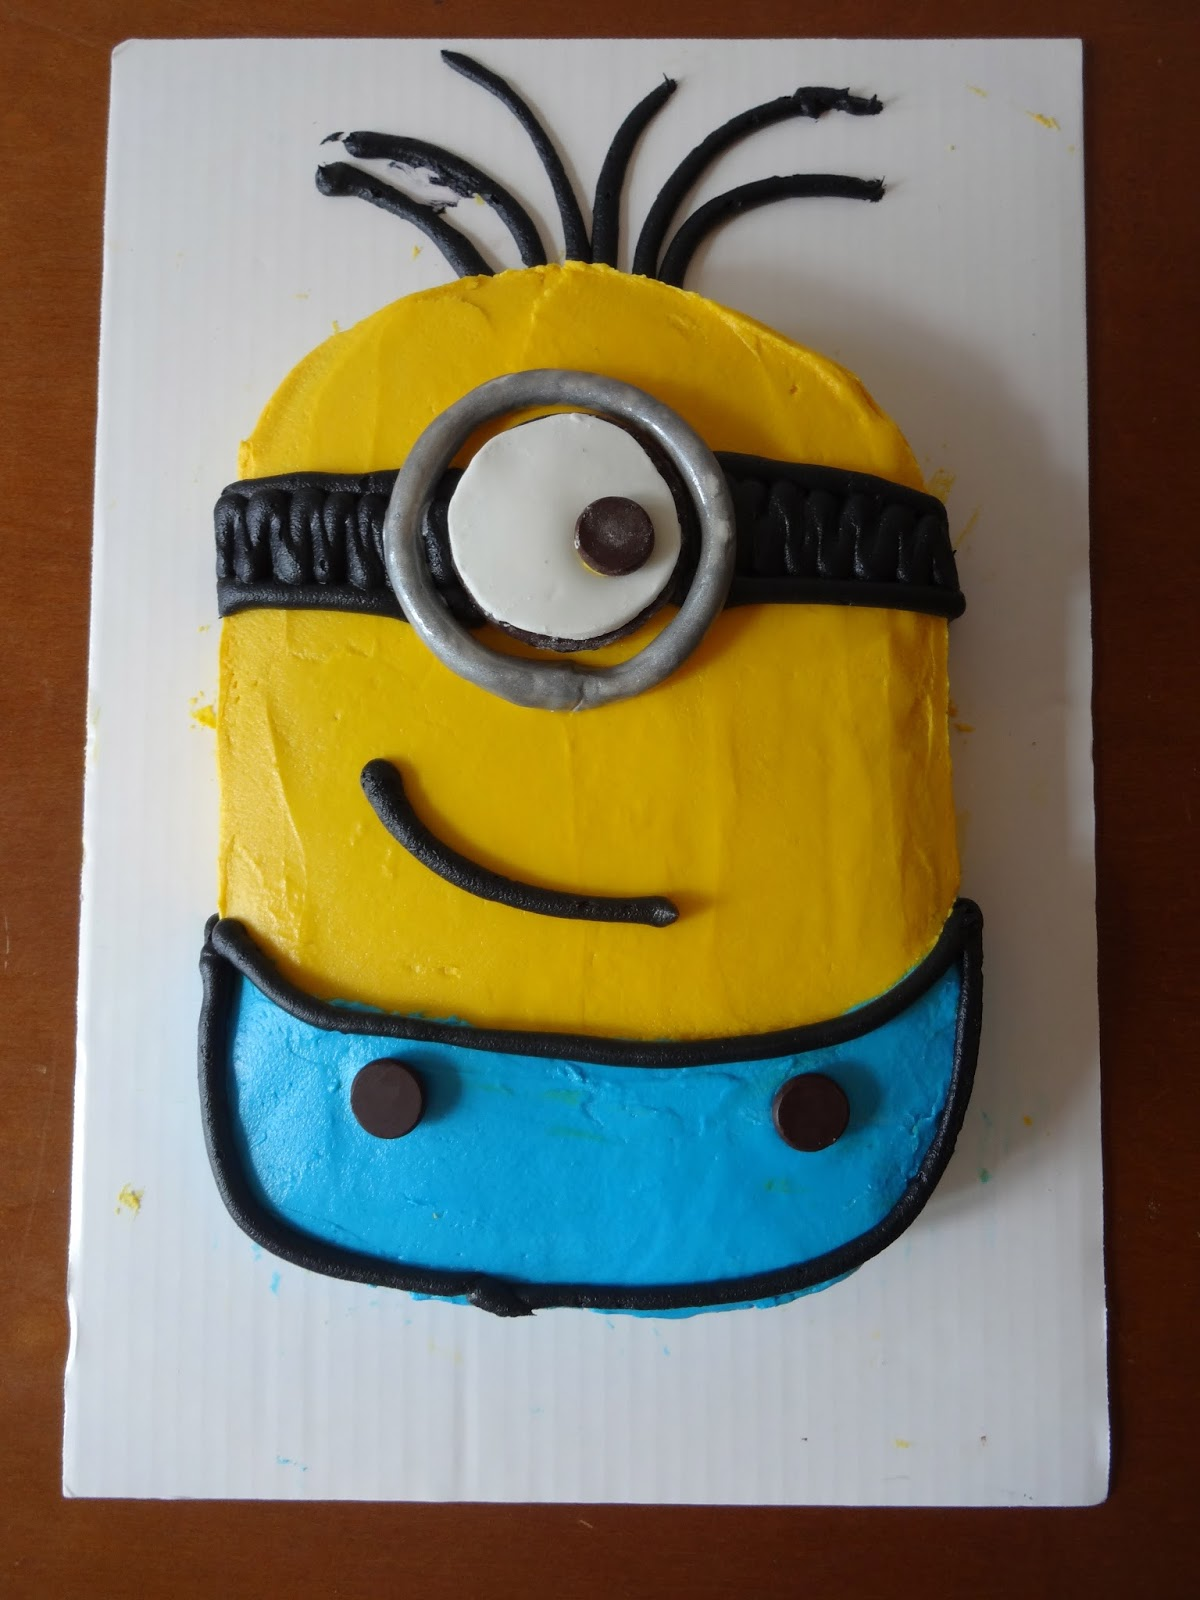 Birthday Cake Ideas Minions Image Inspiration of Cake and Birthday